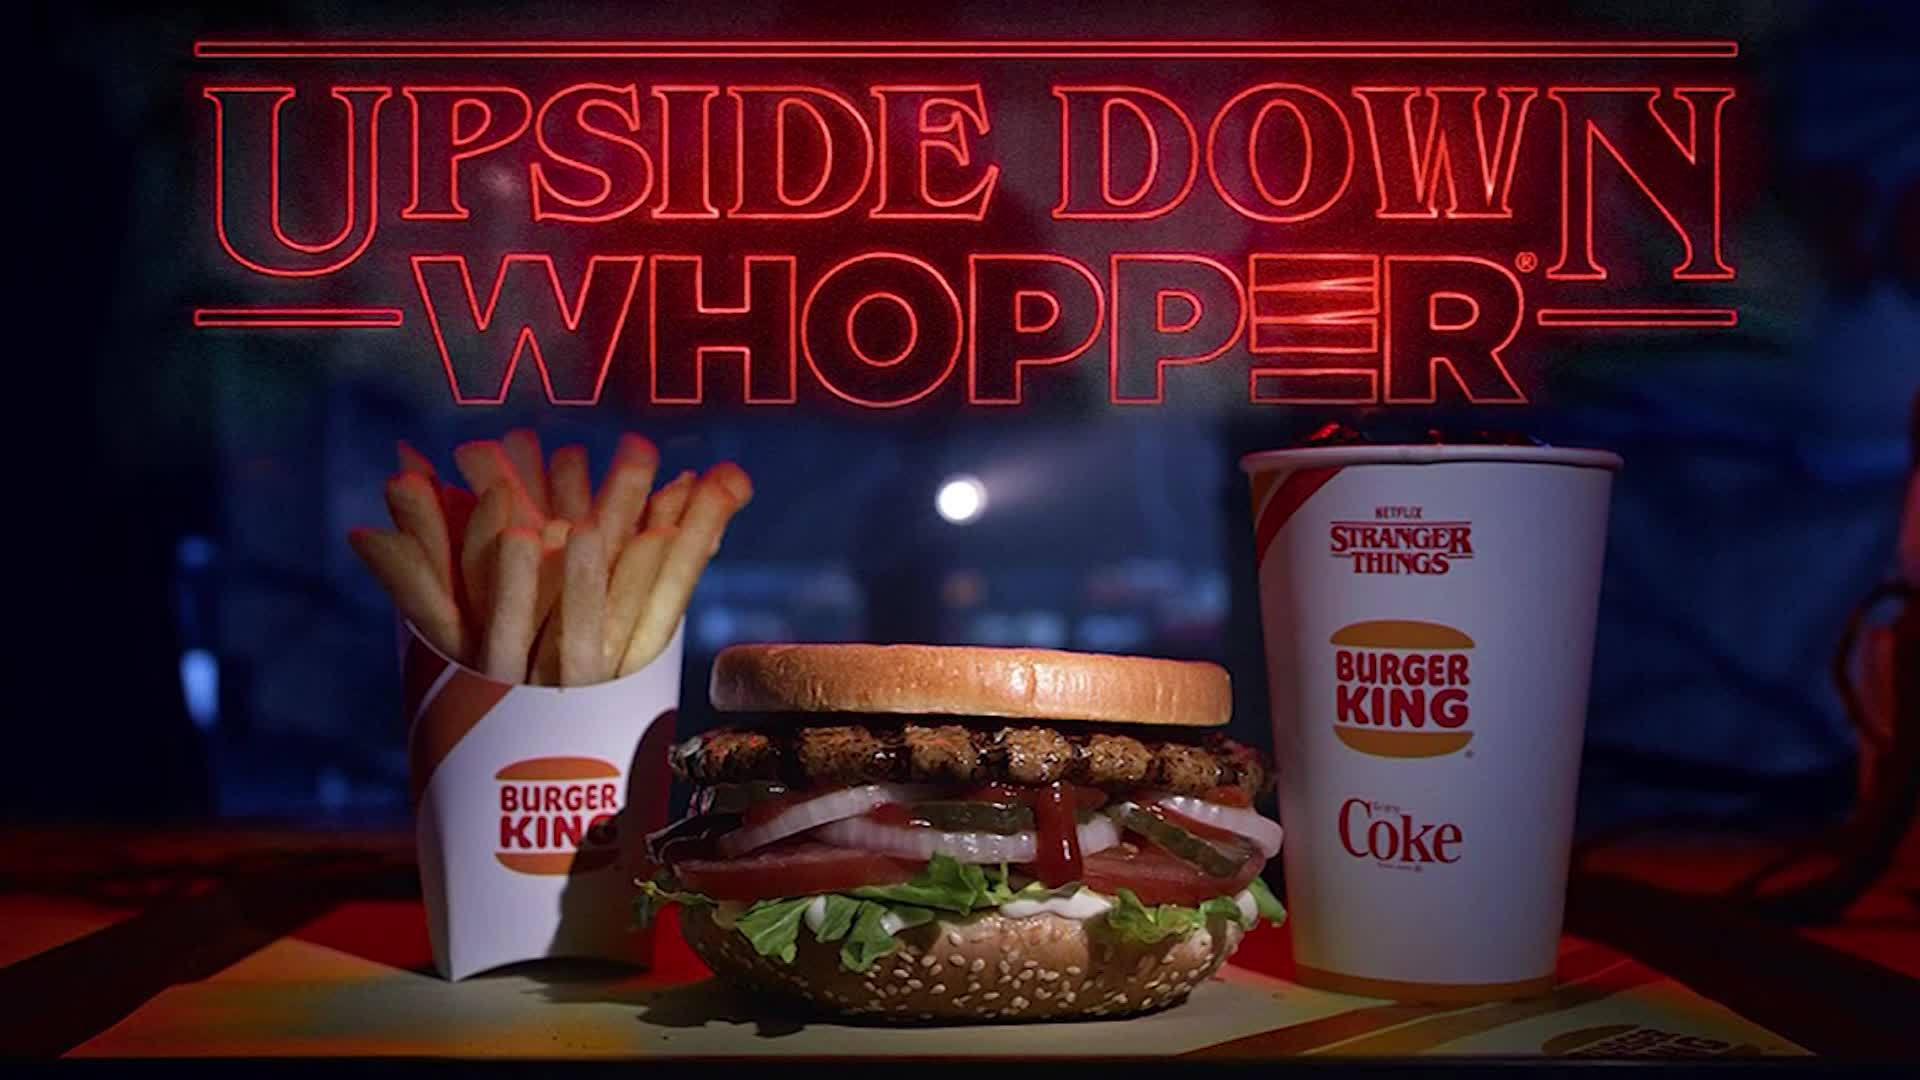 Burger_King_has_new_Upside_Down_Whopper_0_20190613172525